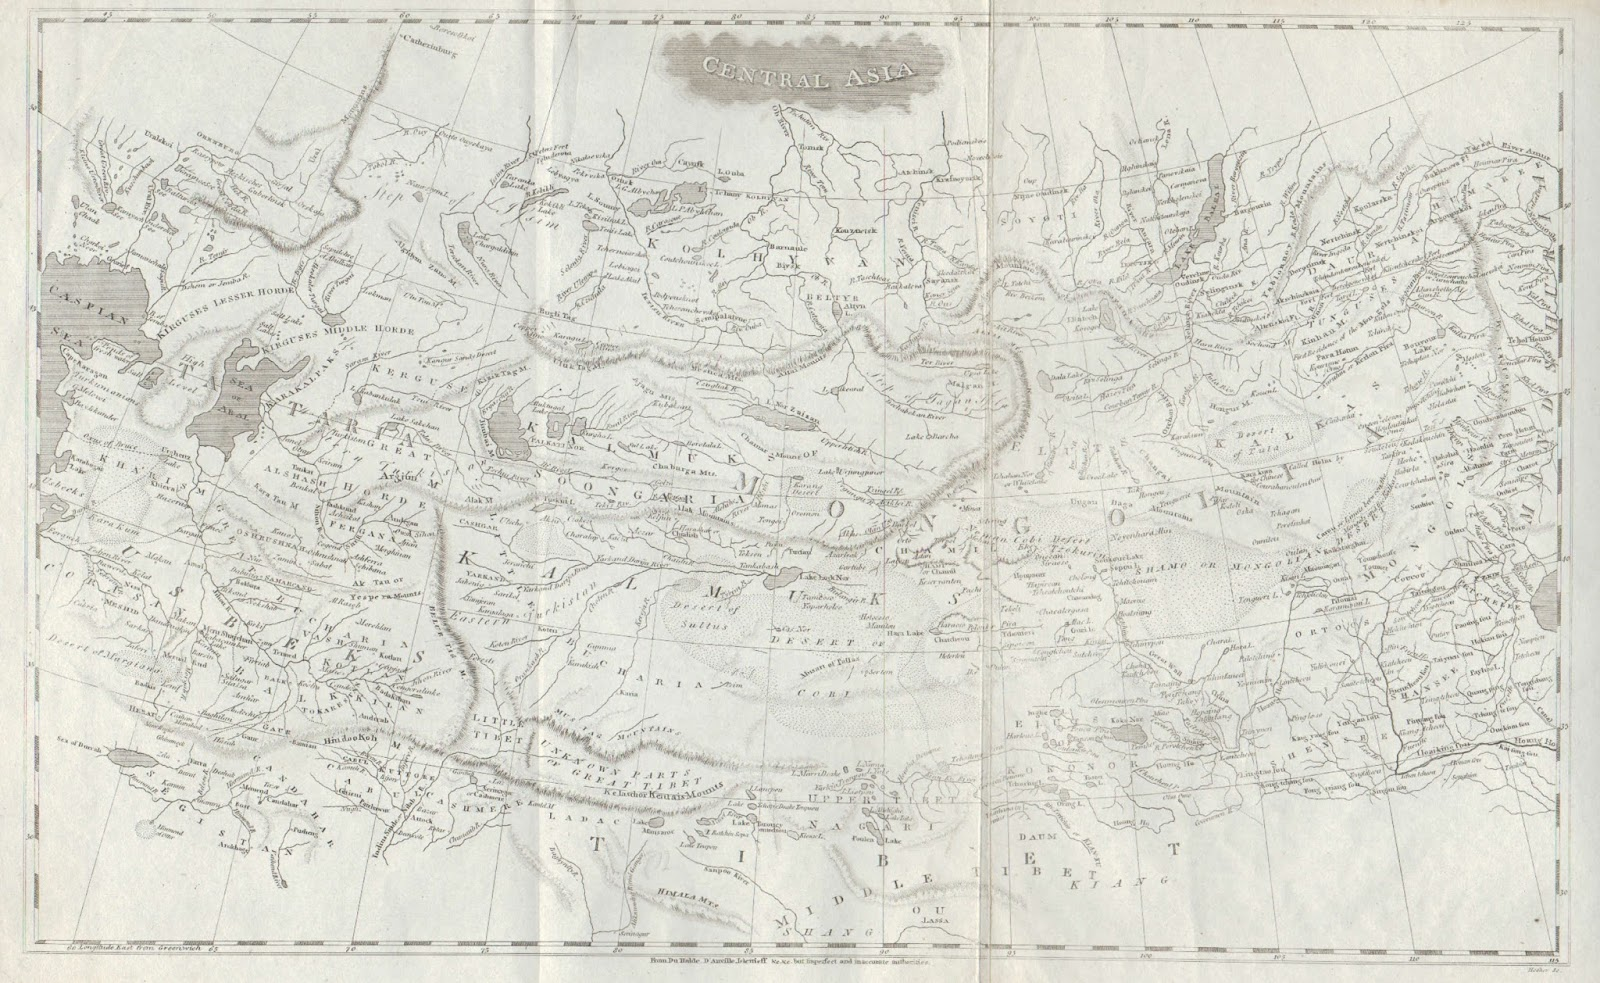 the final map which i ll write about today is a map of central asia which appeared in the 1804 a new and elegant general atlas jointly produced by aaron